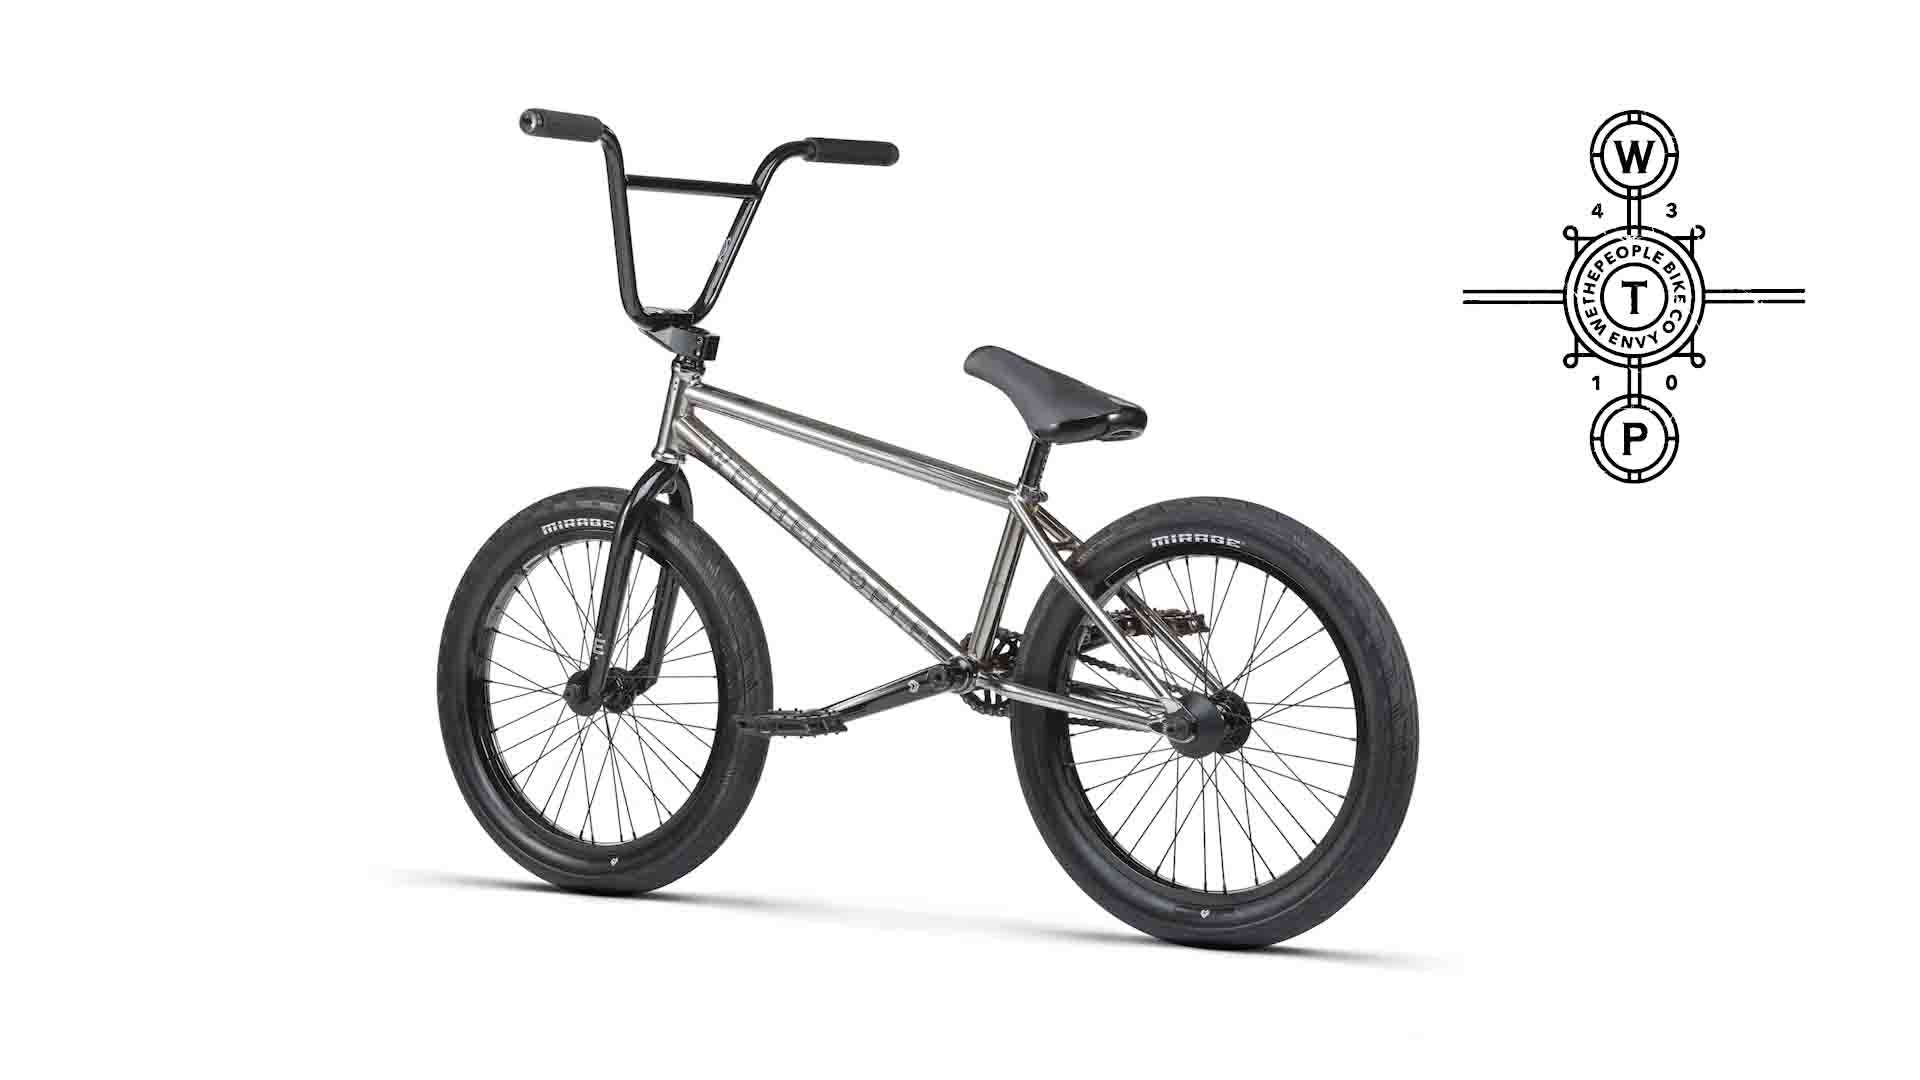 """THE BEST BMX BIKE EVER BUILT?"" - ENVY 2021 - WETHEPEOPLE BMX"